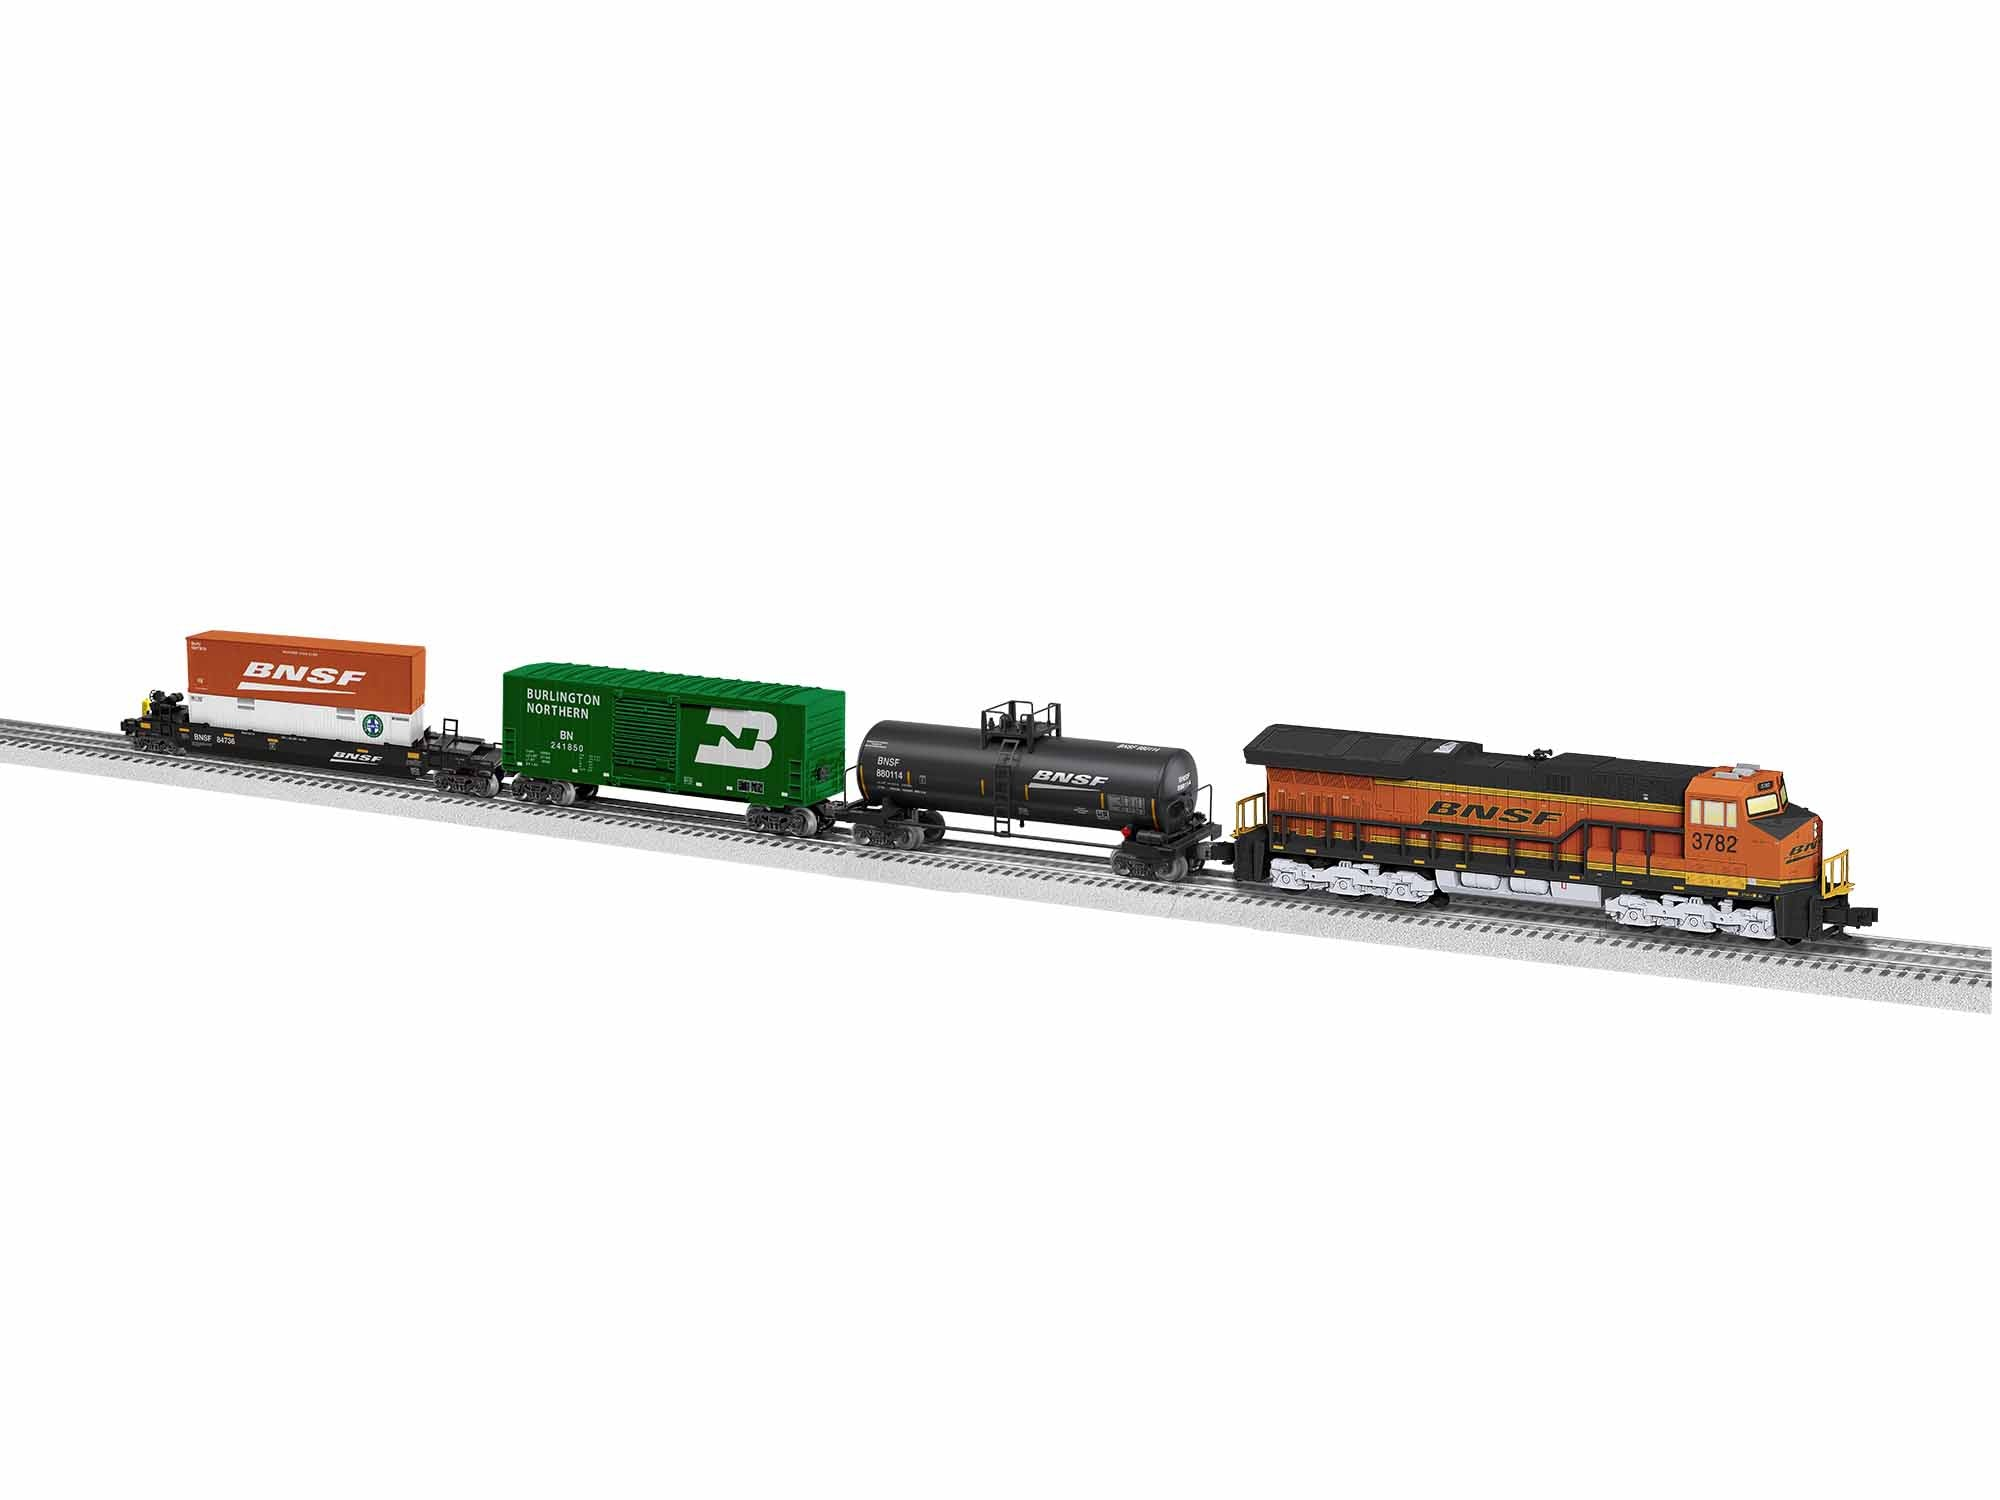 Lionel BNSF Tier 4 Set with Bluetooth